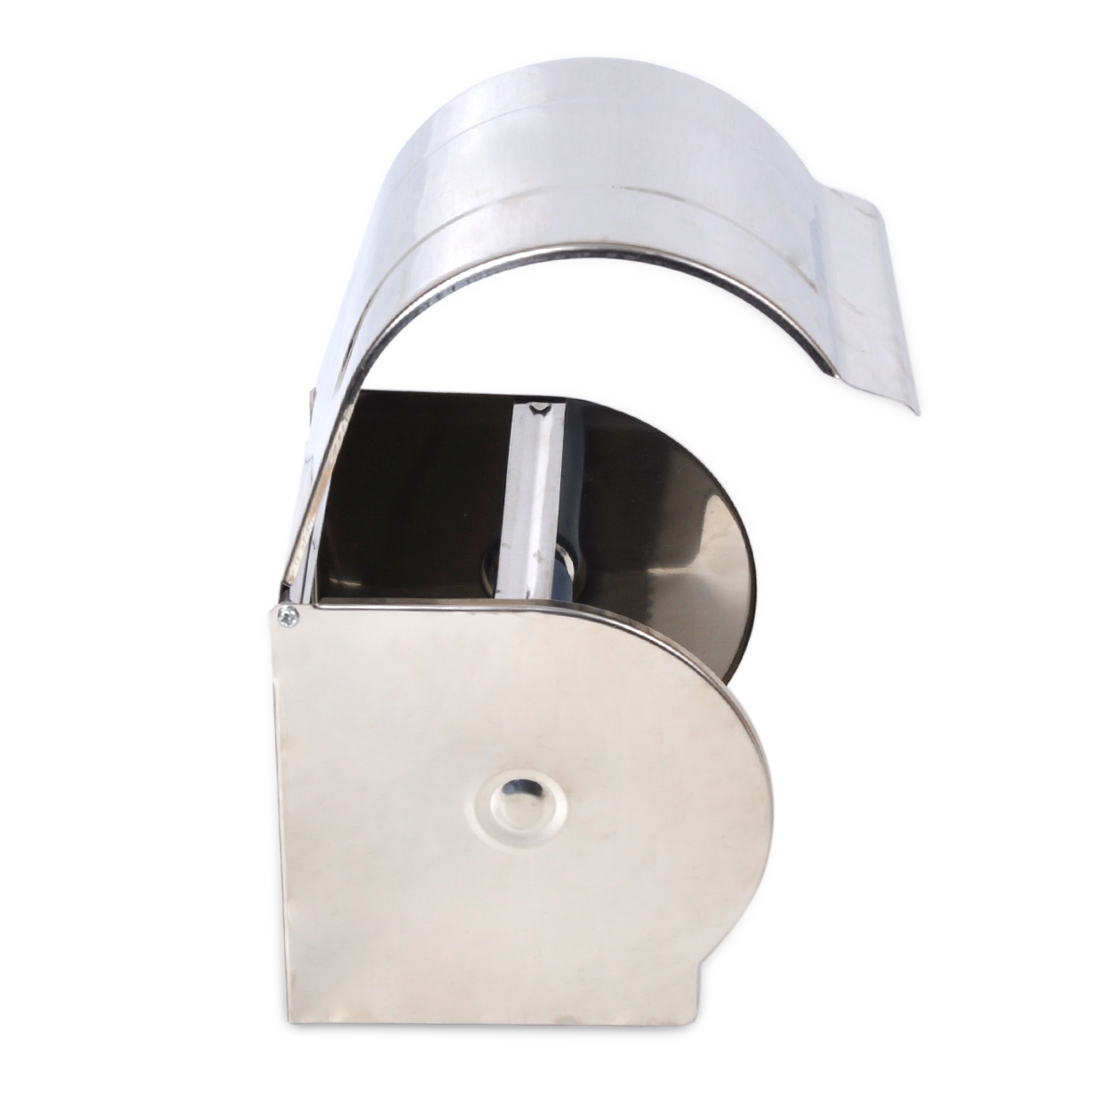 Stainless Steel Toilet Paper Stand Stainless Steel Bathroom Toilet Paper Holder Roll Tissue